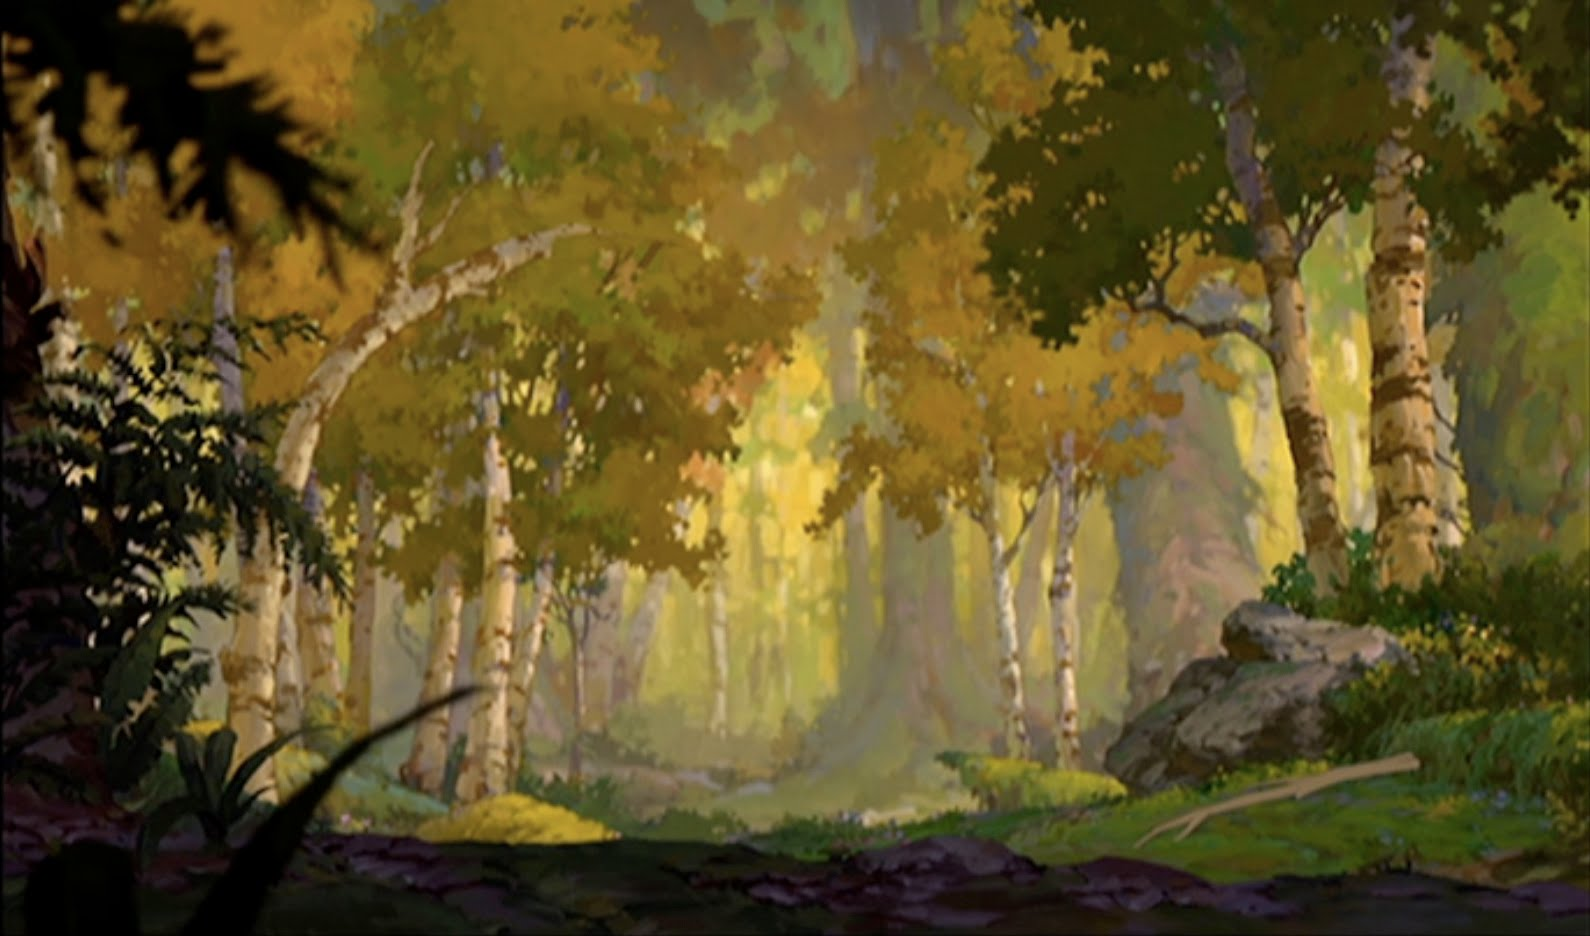 Winnie The Pooh Forest Background: Animation Backgrounds: BROTHER BEAR